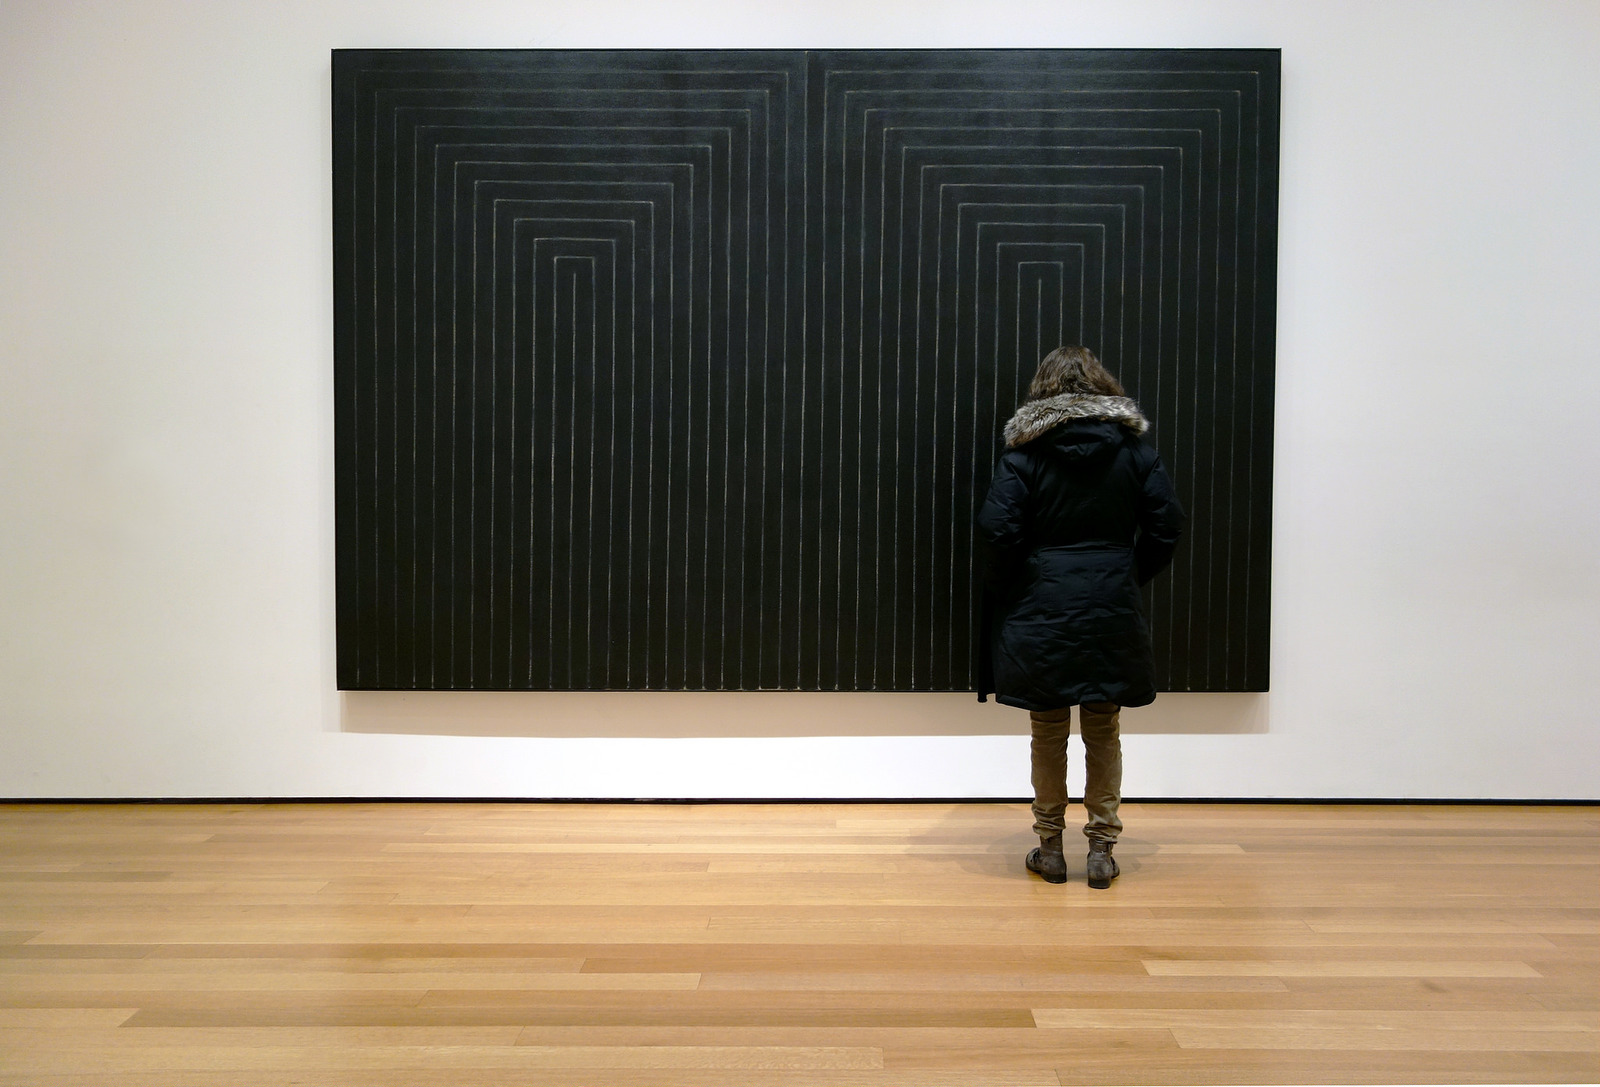 Frank Stella, The Marriage of Reason and Squalor (article) | Khan